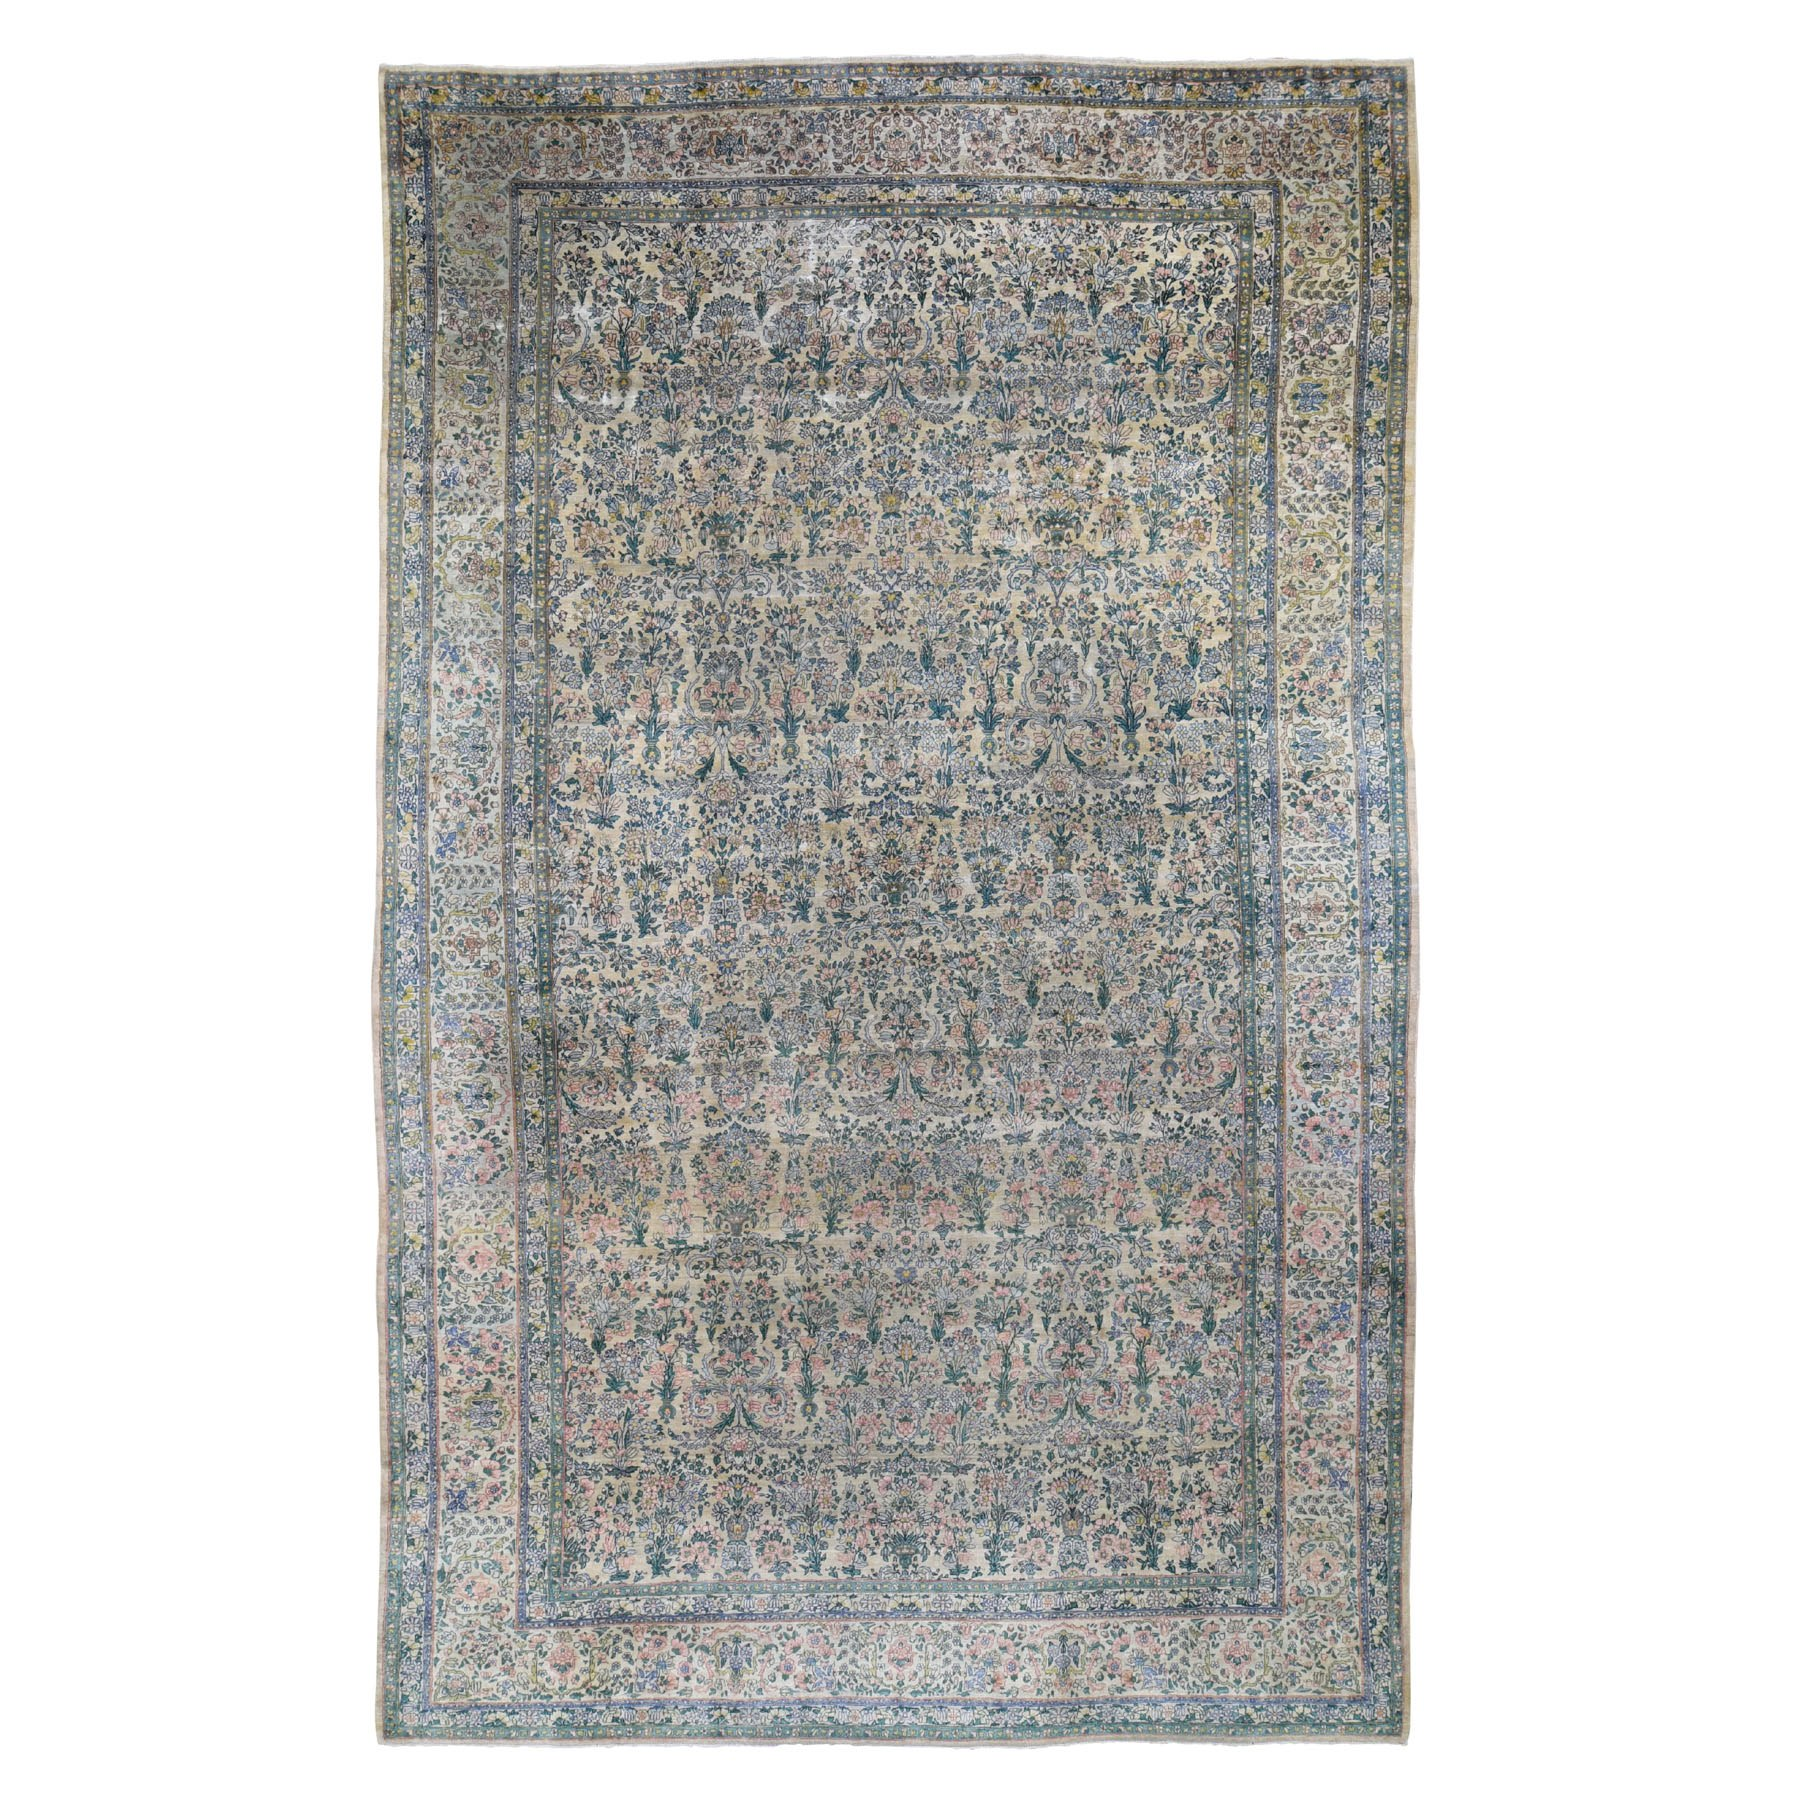 Antique Collection Hand Knotted Beige Rug No: 0196920